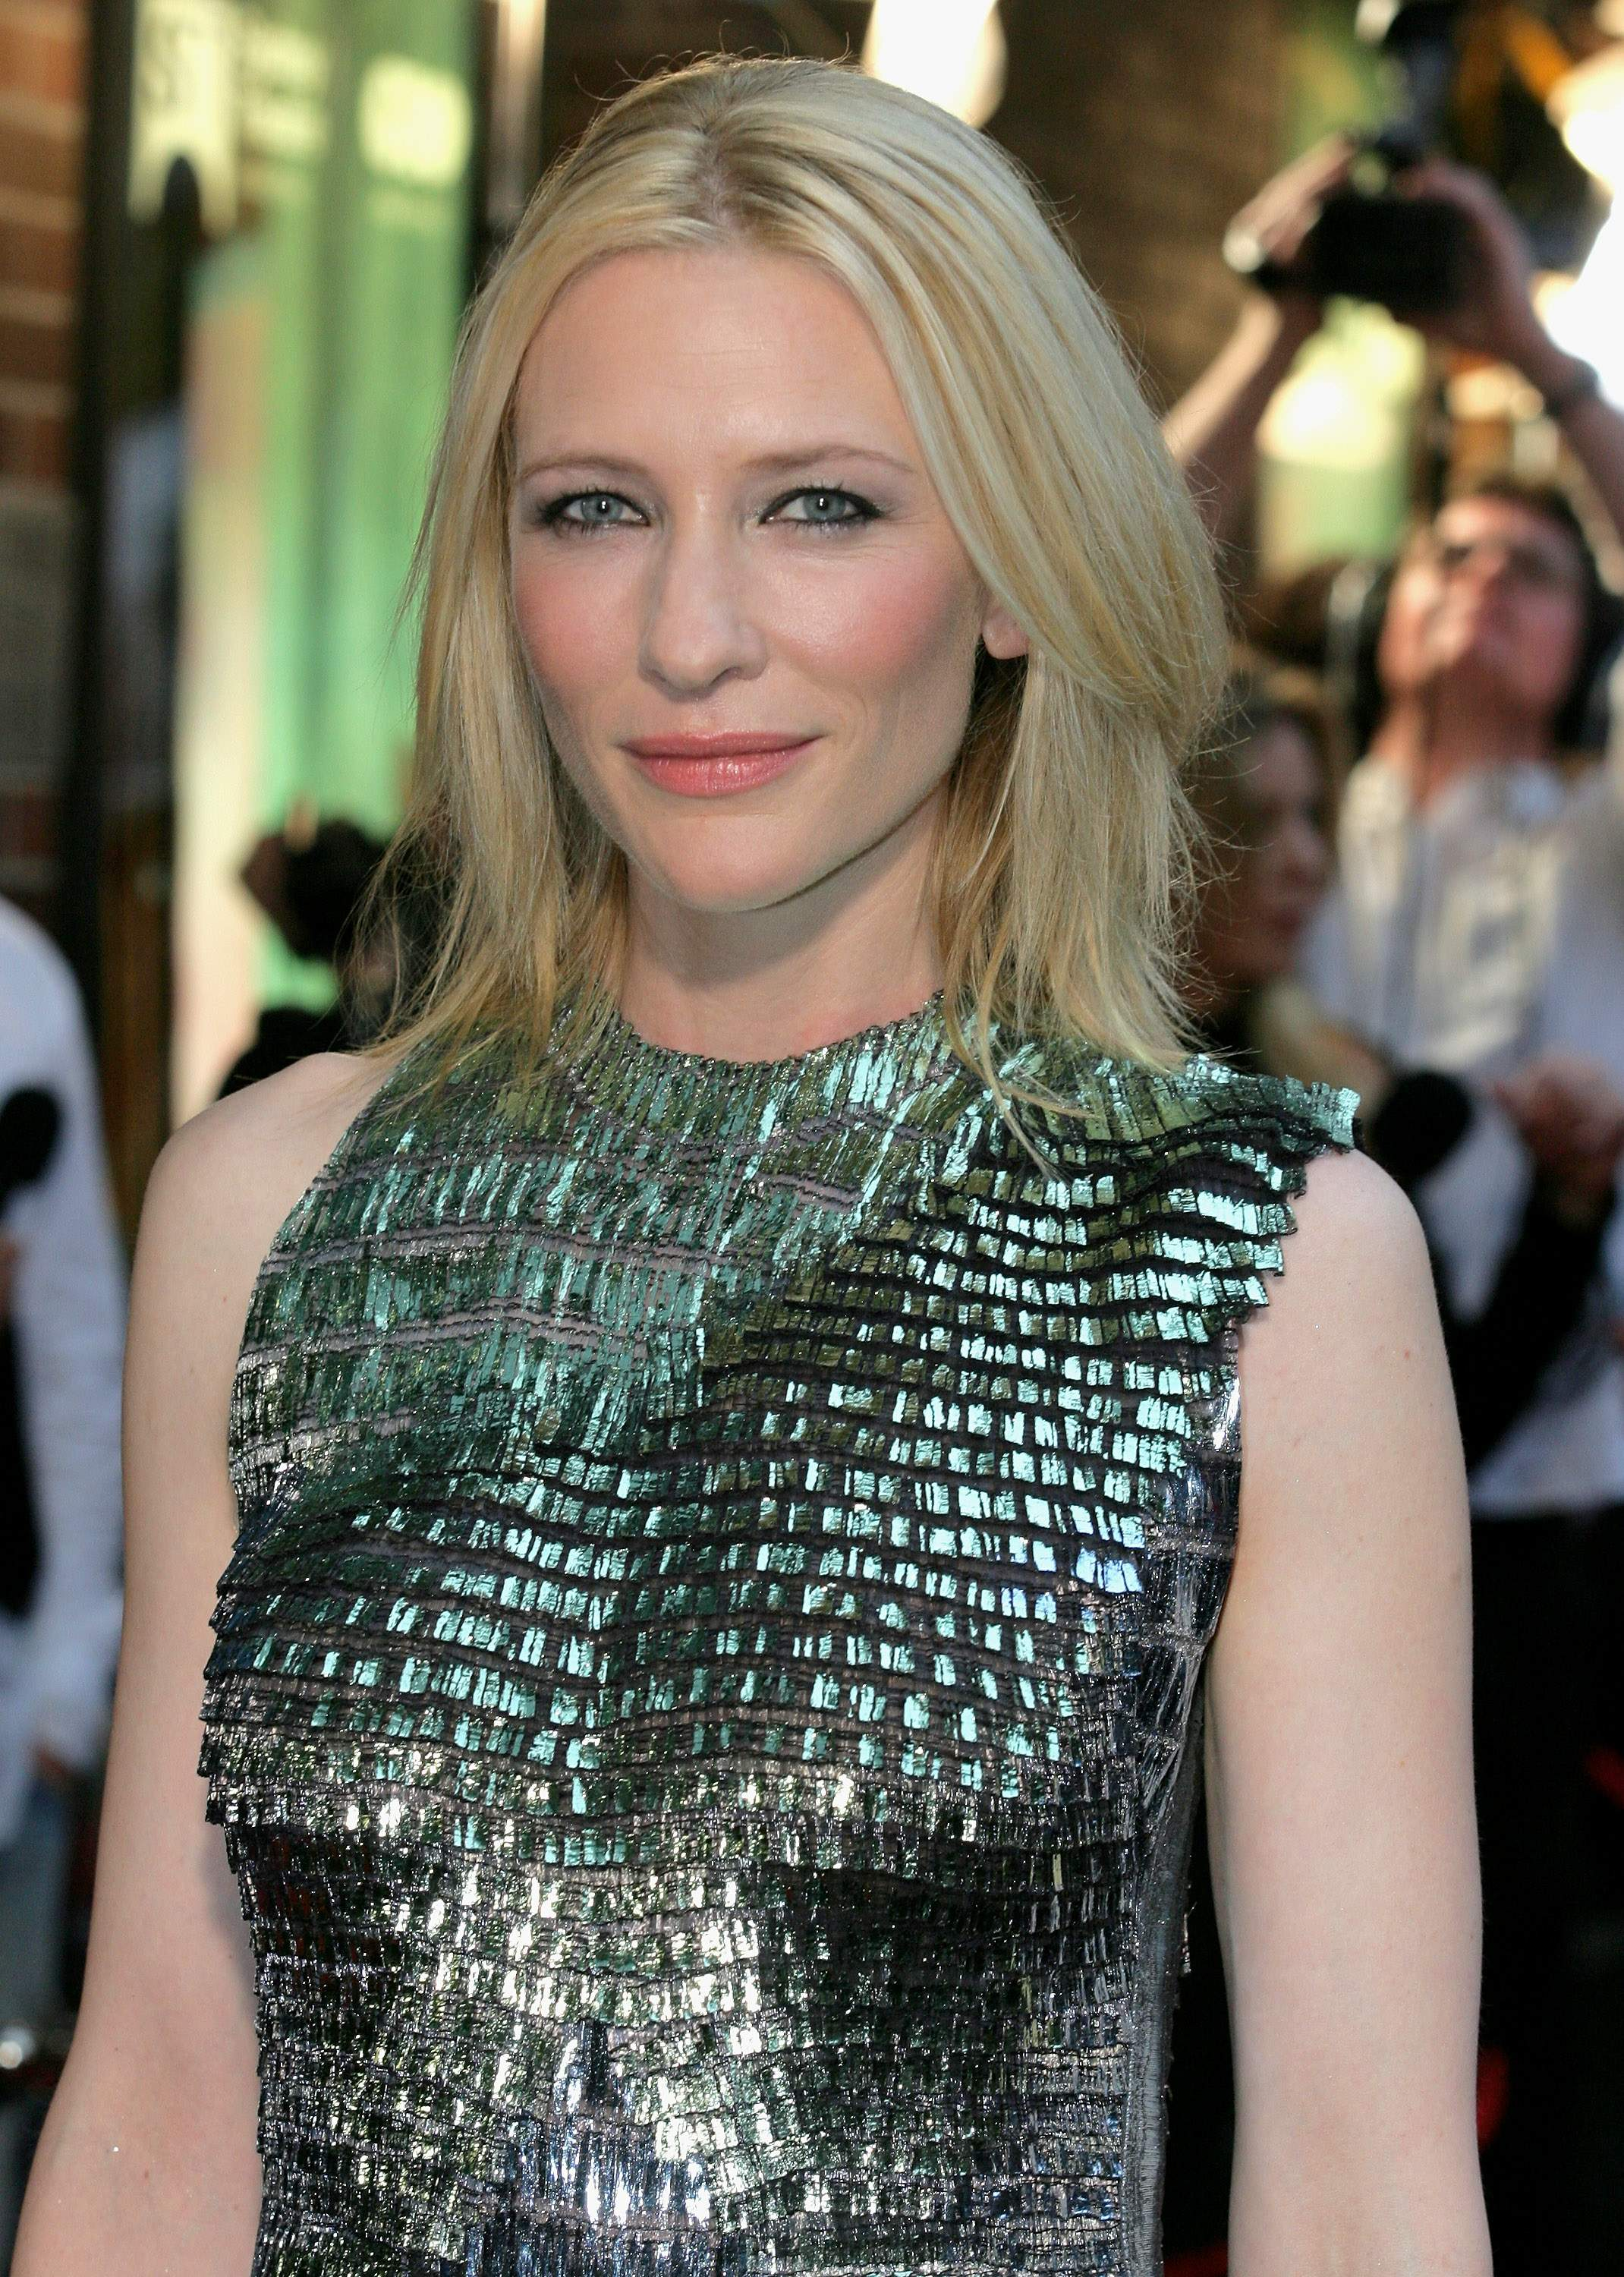 02368_cate-blanchett-the-curious-case-of-benjamin-button019_122_517lo.jpg